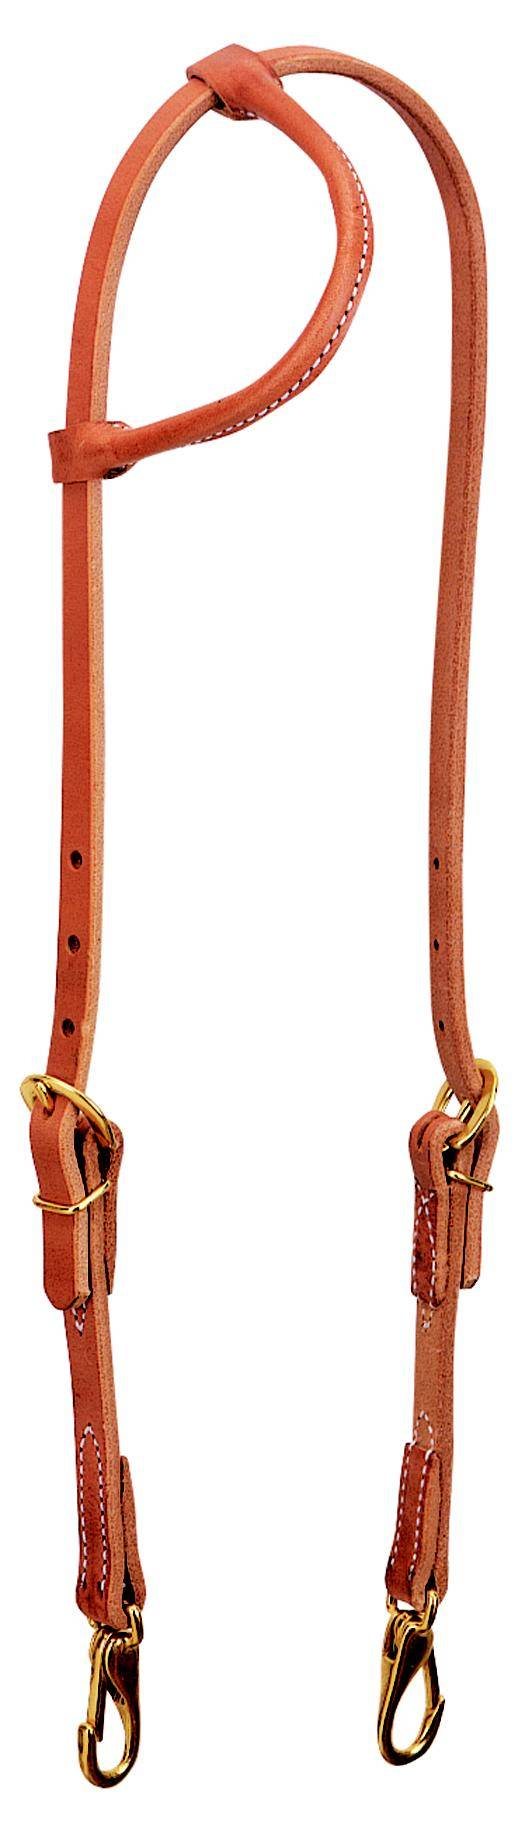 Weaver Leather Rolled Sliding Ear Trainer Headstall